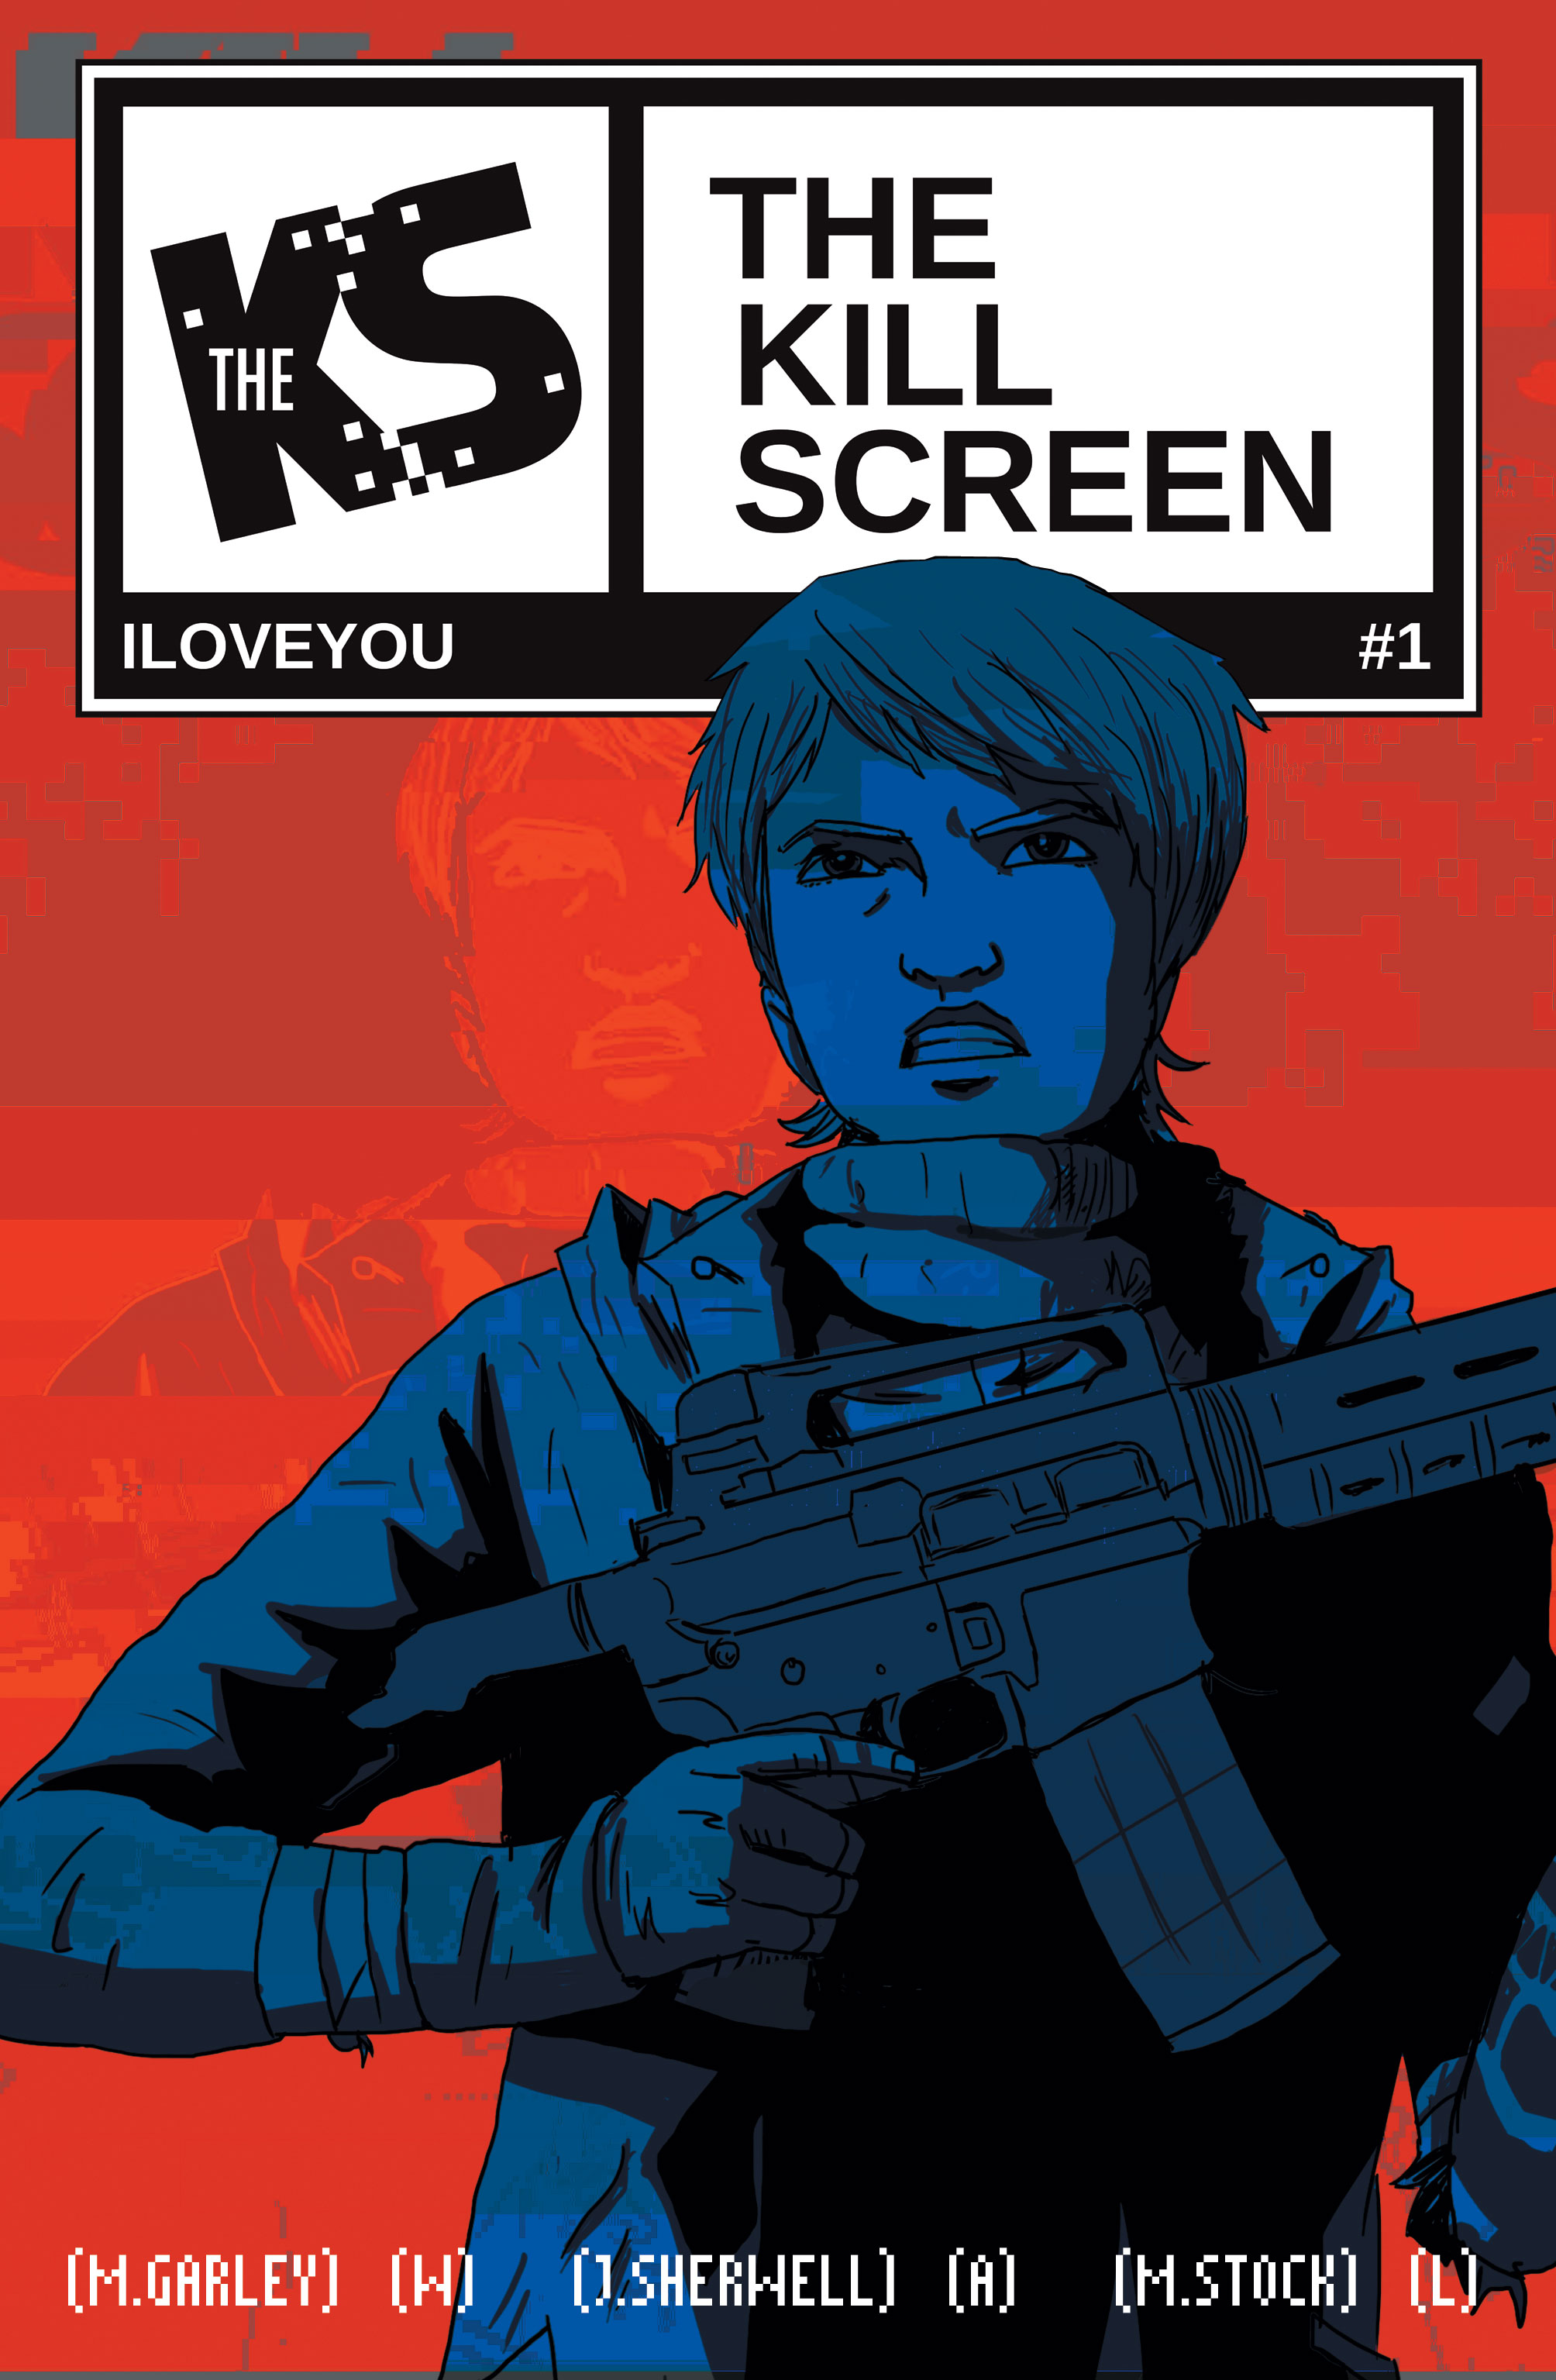 The cover of The Kill Screen #1 (ILOVEYOU)